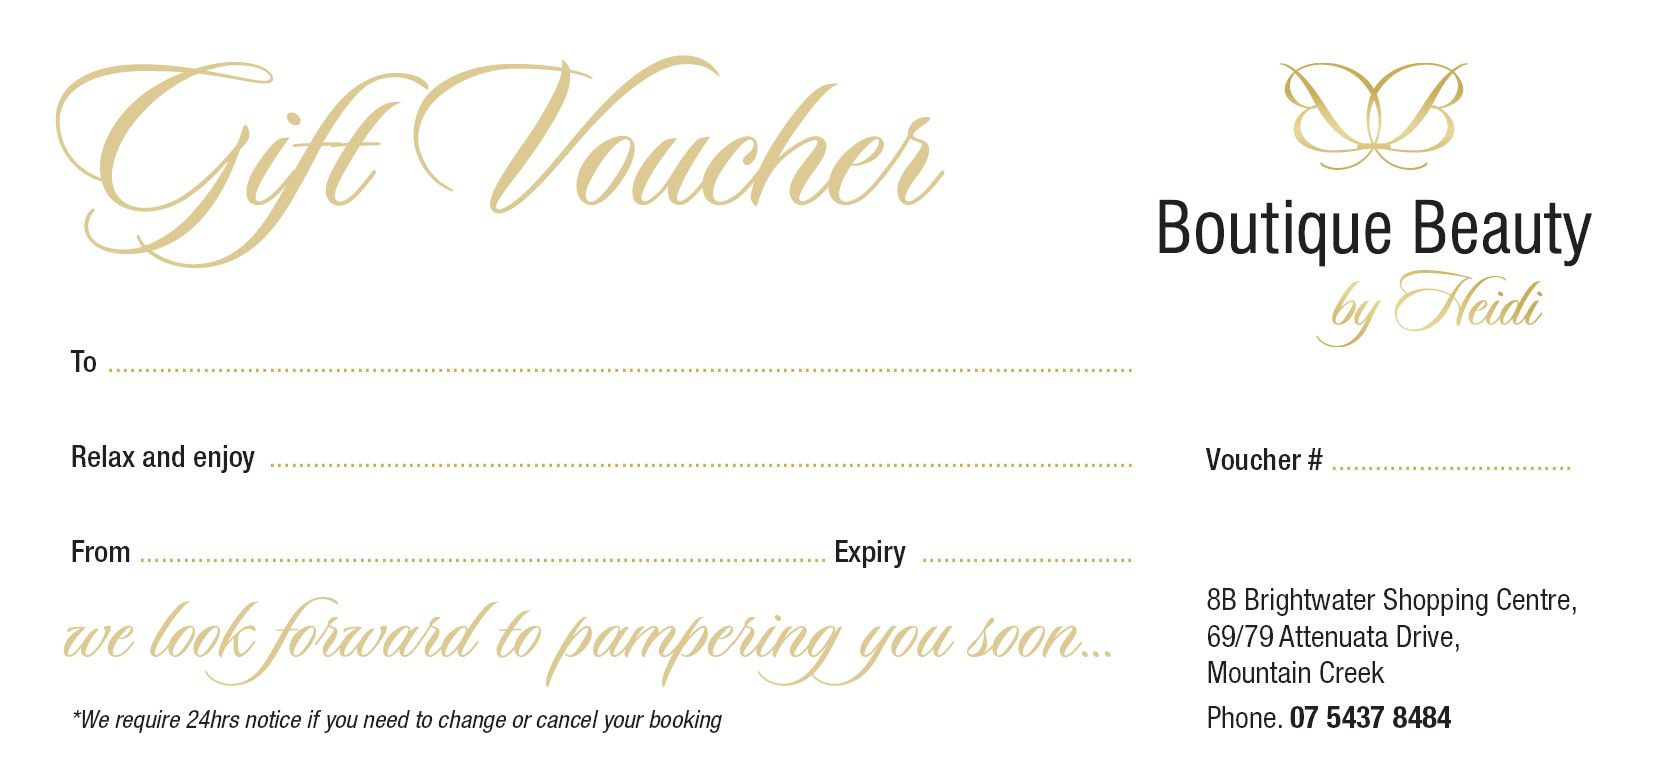 Gift voucher design for boutique beauty idprint portfolio gift voucher design for boutique beauty 1betcityfo Images